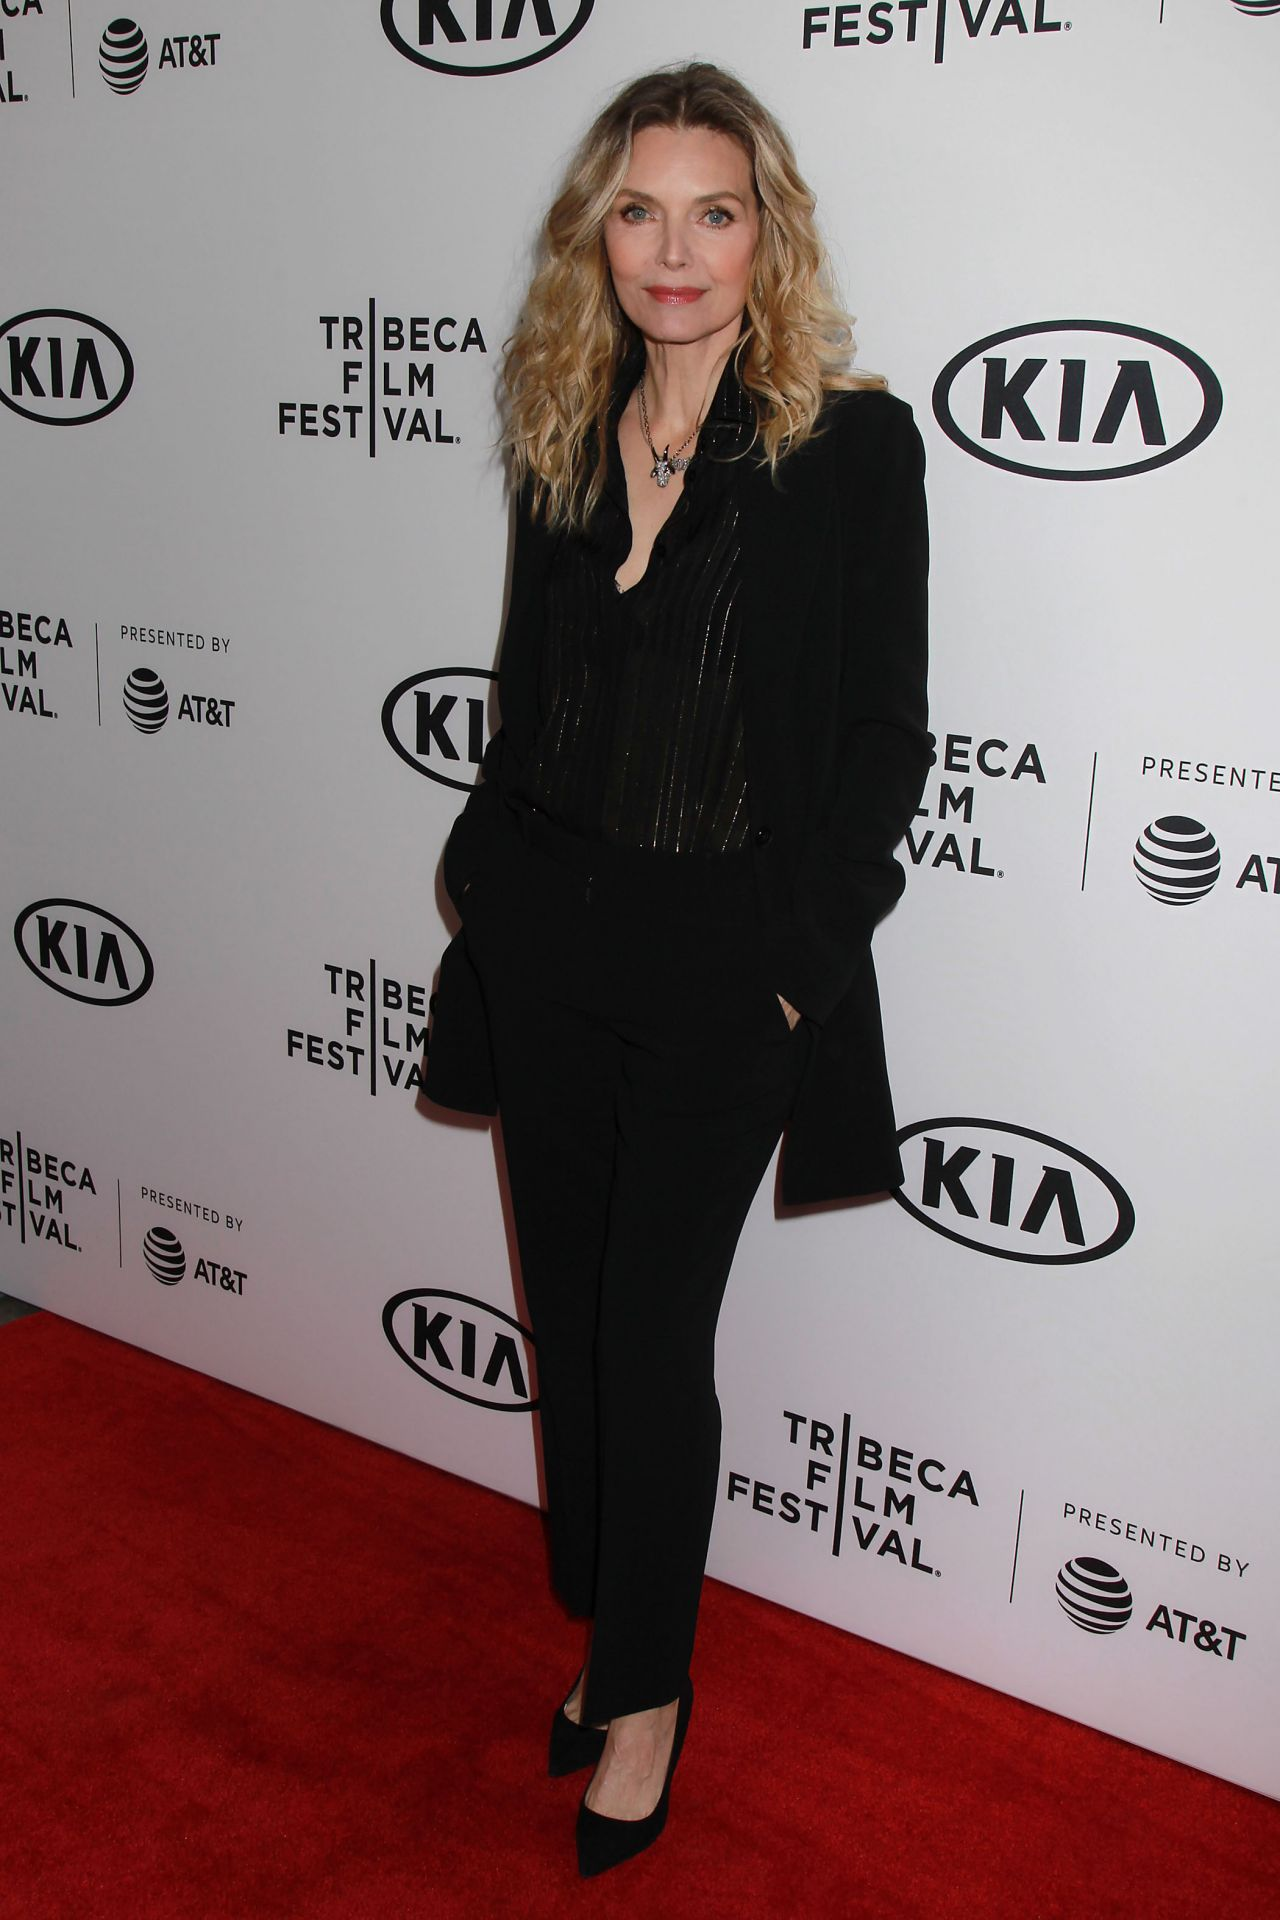 https://celebmafia.com/wp-content/uploads/2018/04/michelle-pfeiffer-scarface-35th-reunion-red-carpet-at-tribeca-film-festival-in-ny-0.jpg